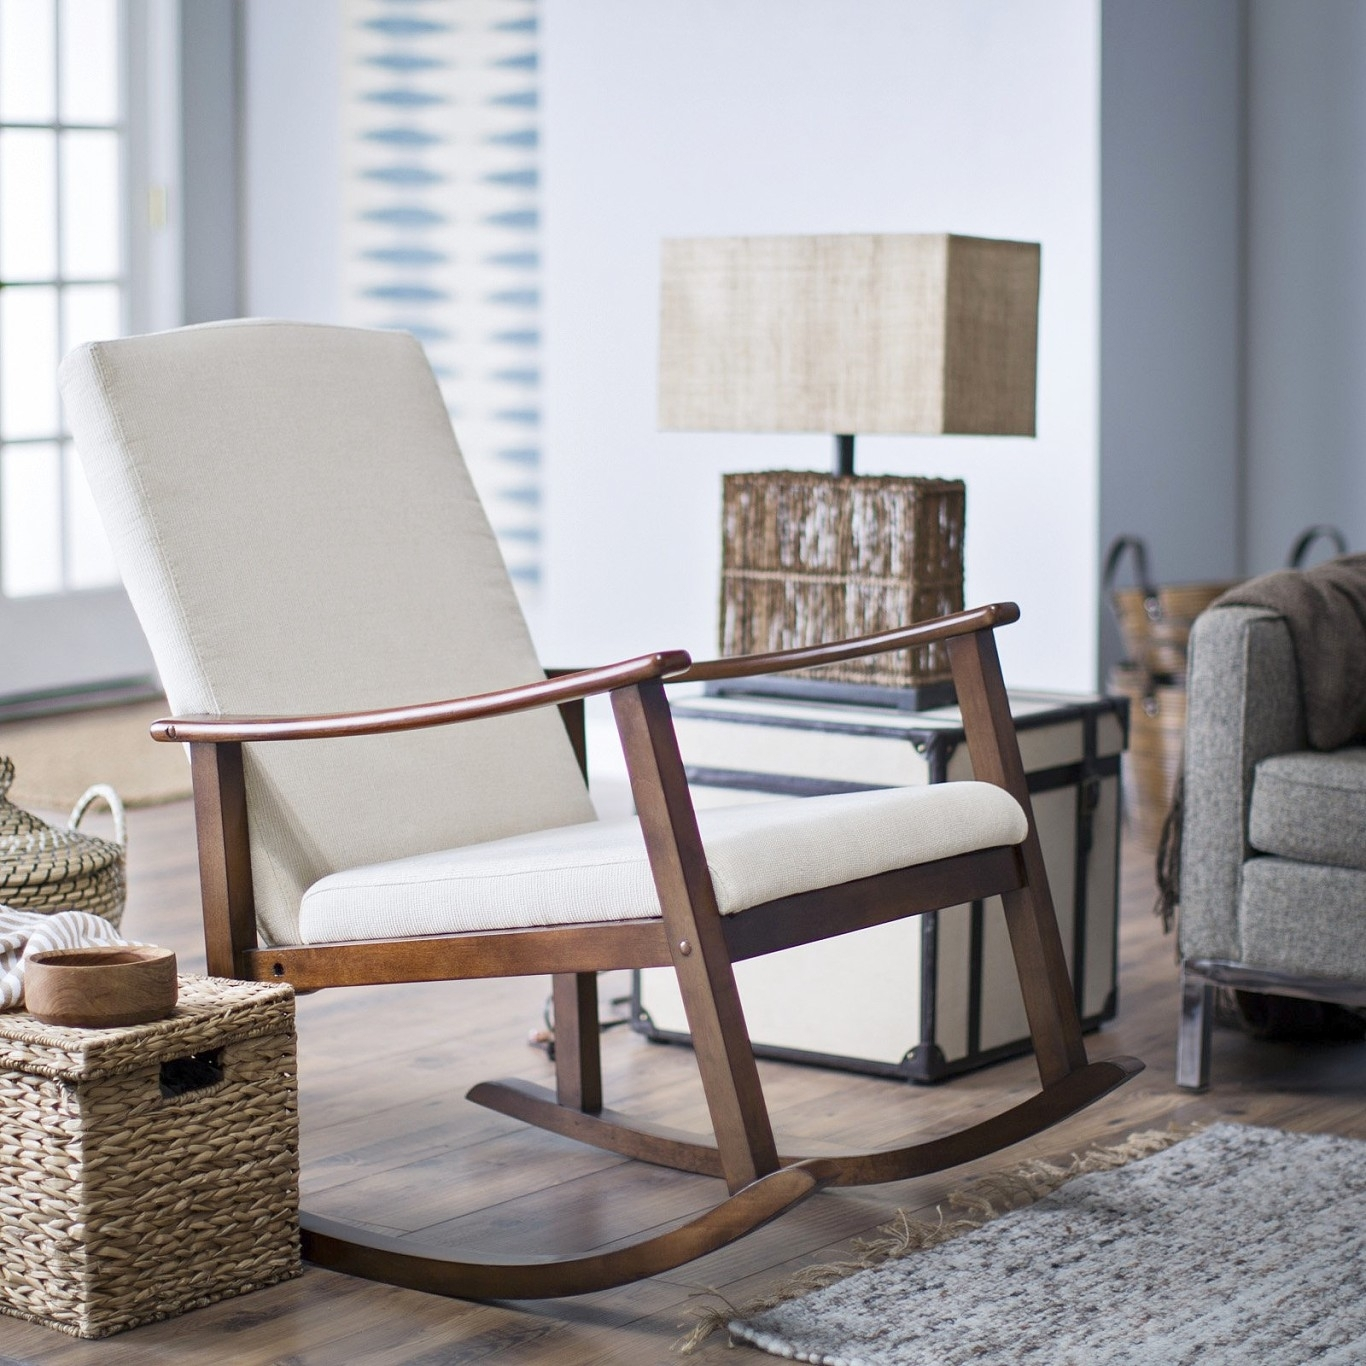 Cuddler Barrel Chair Amazon Chairs Folding Bernak Swivel Accent Throughout Amazon Rocking Chairs (View 12 of 15)